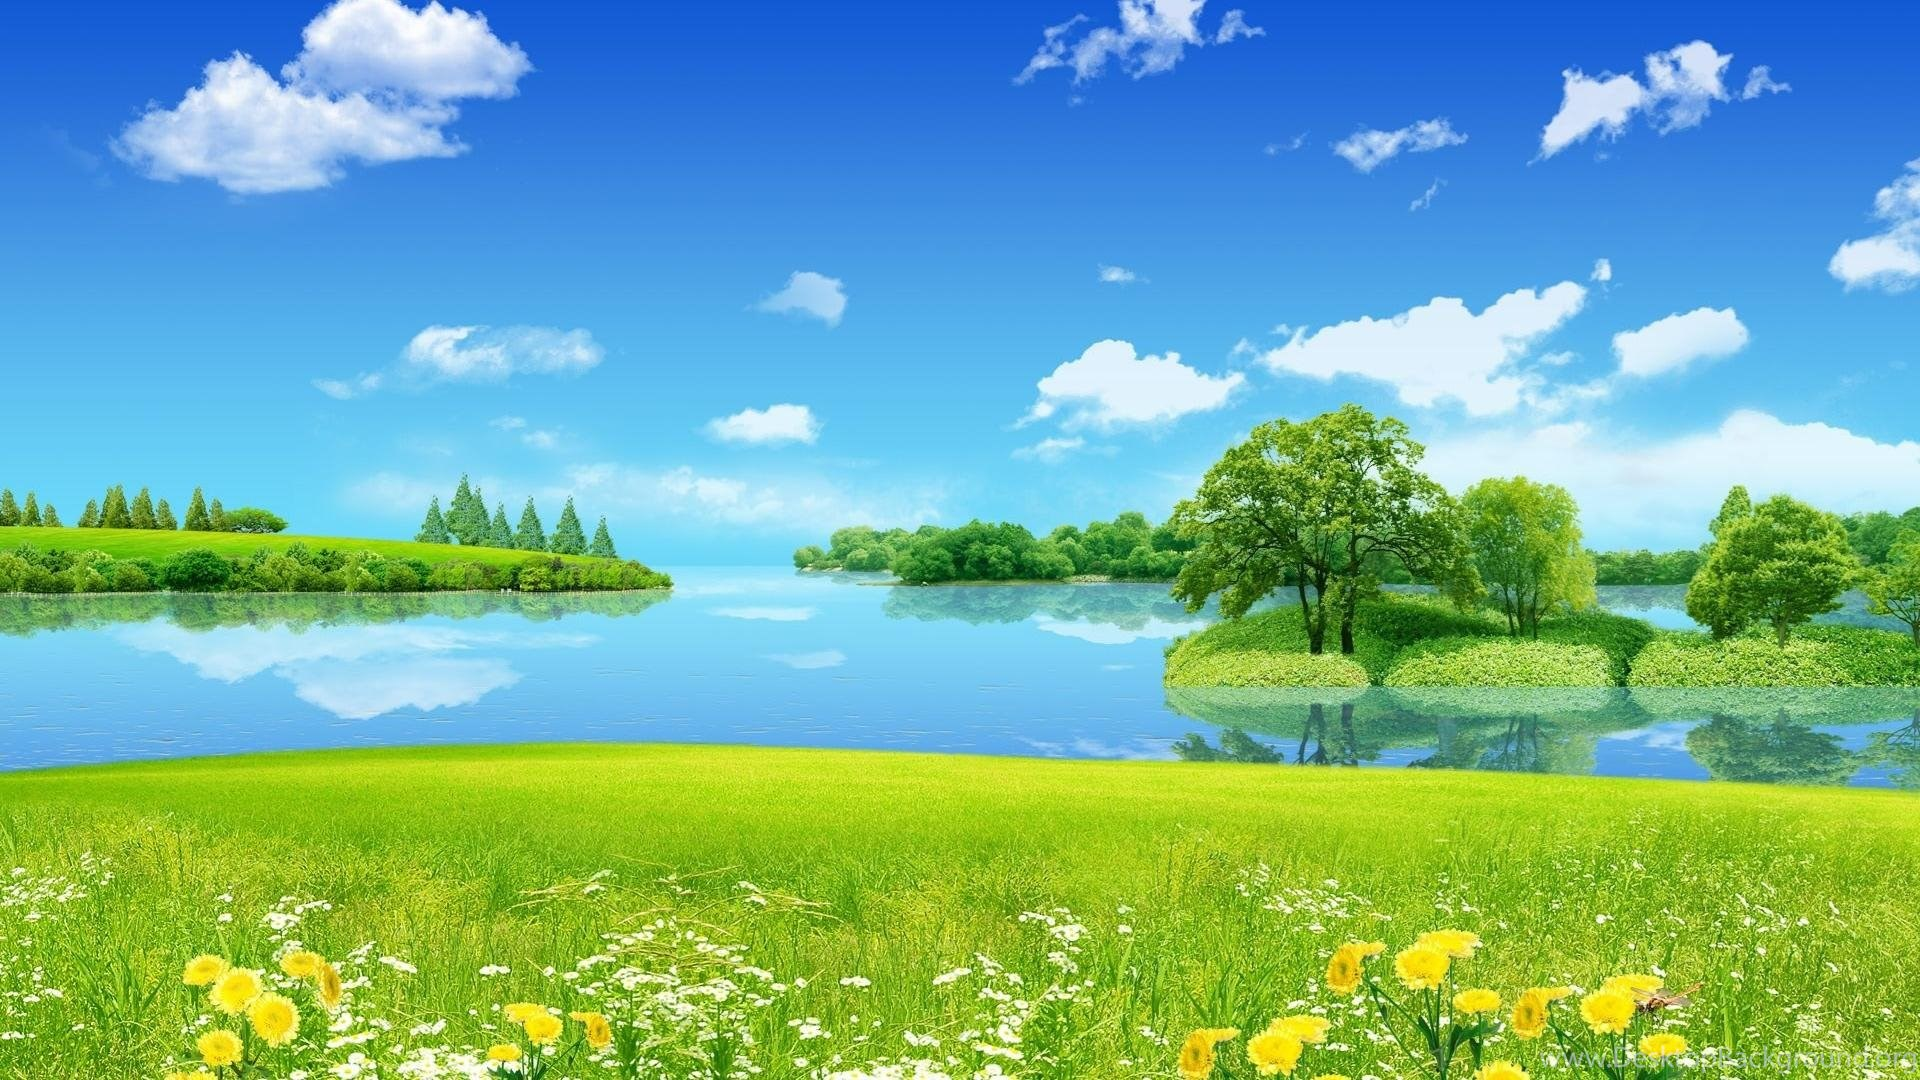 Desktop Hd Nature Moving Wallpapers Free Download Background